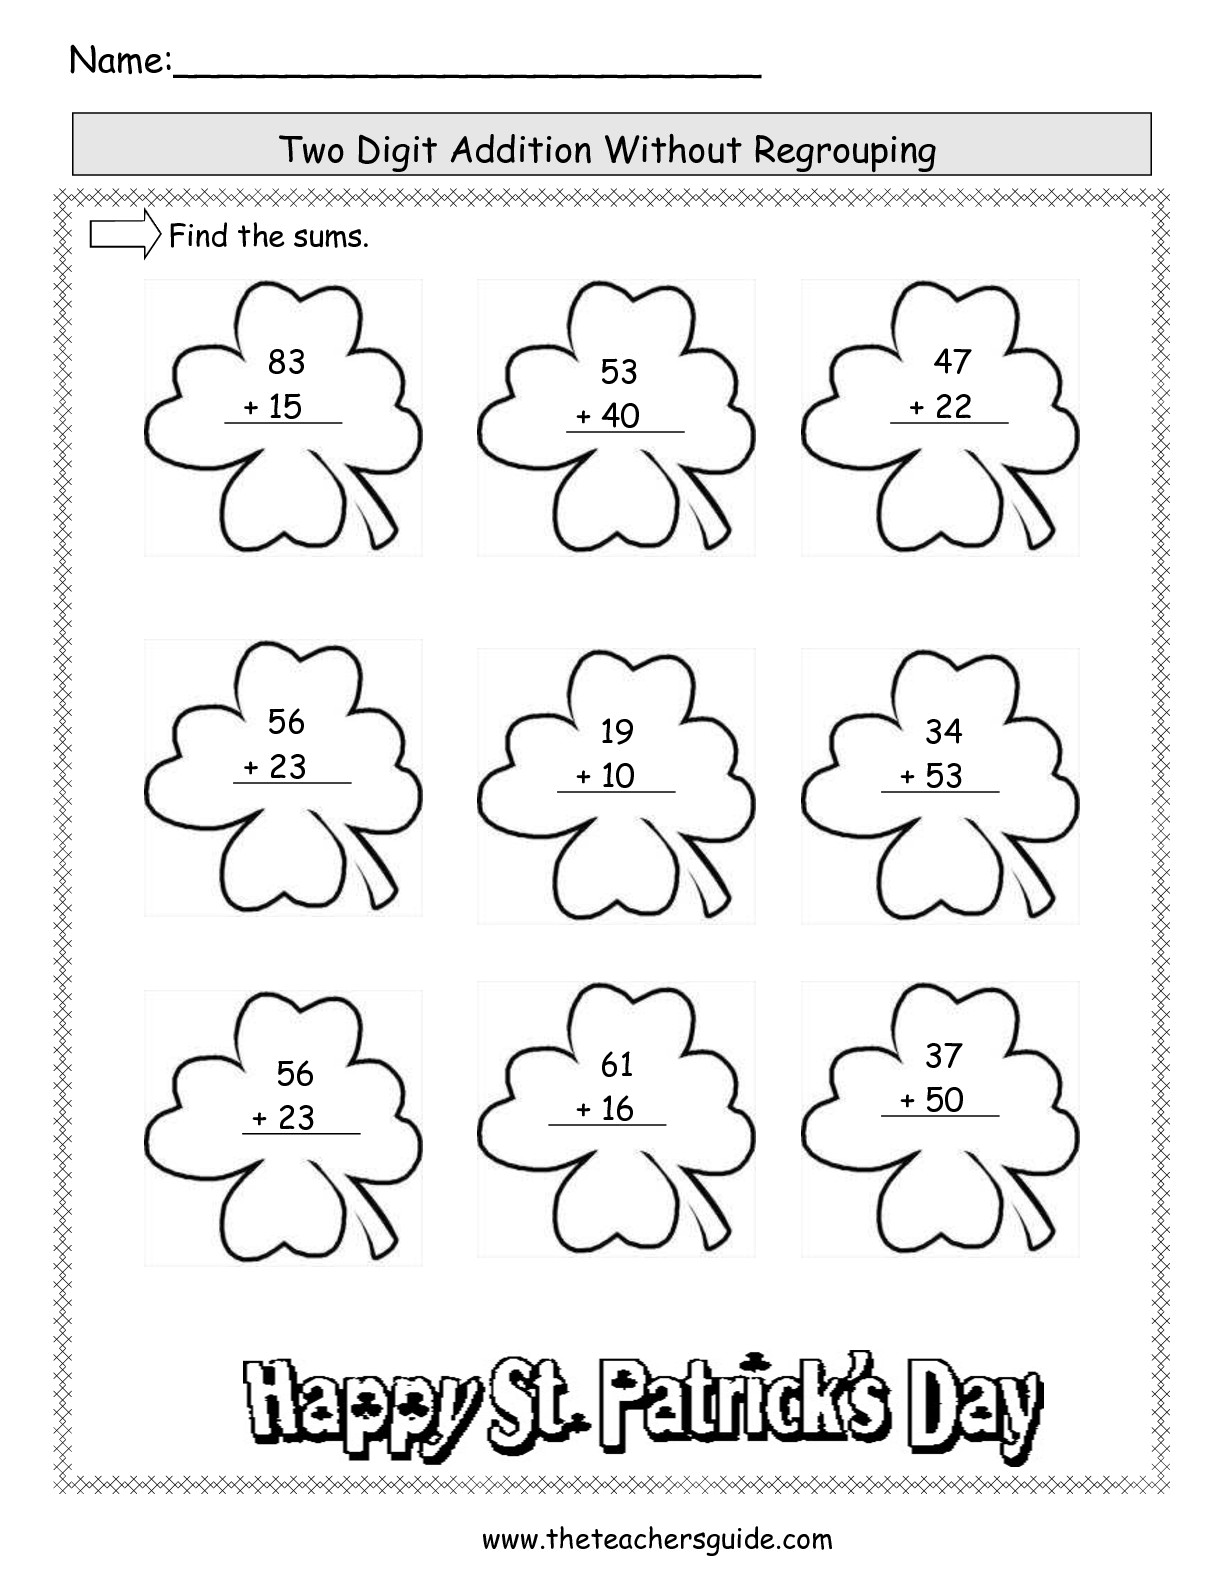 19 Best Images Of 2 Digit Addition Worksheets No Regrouping